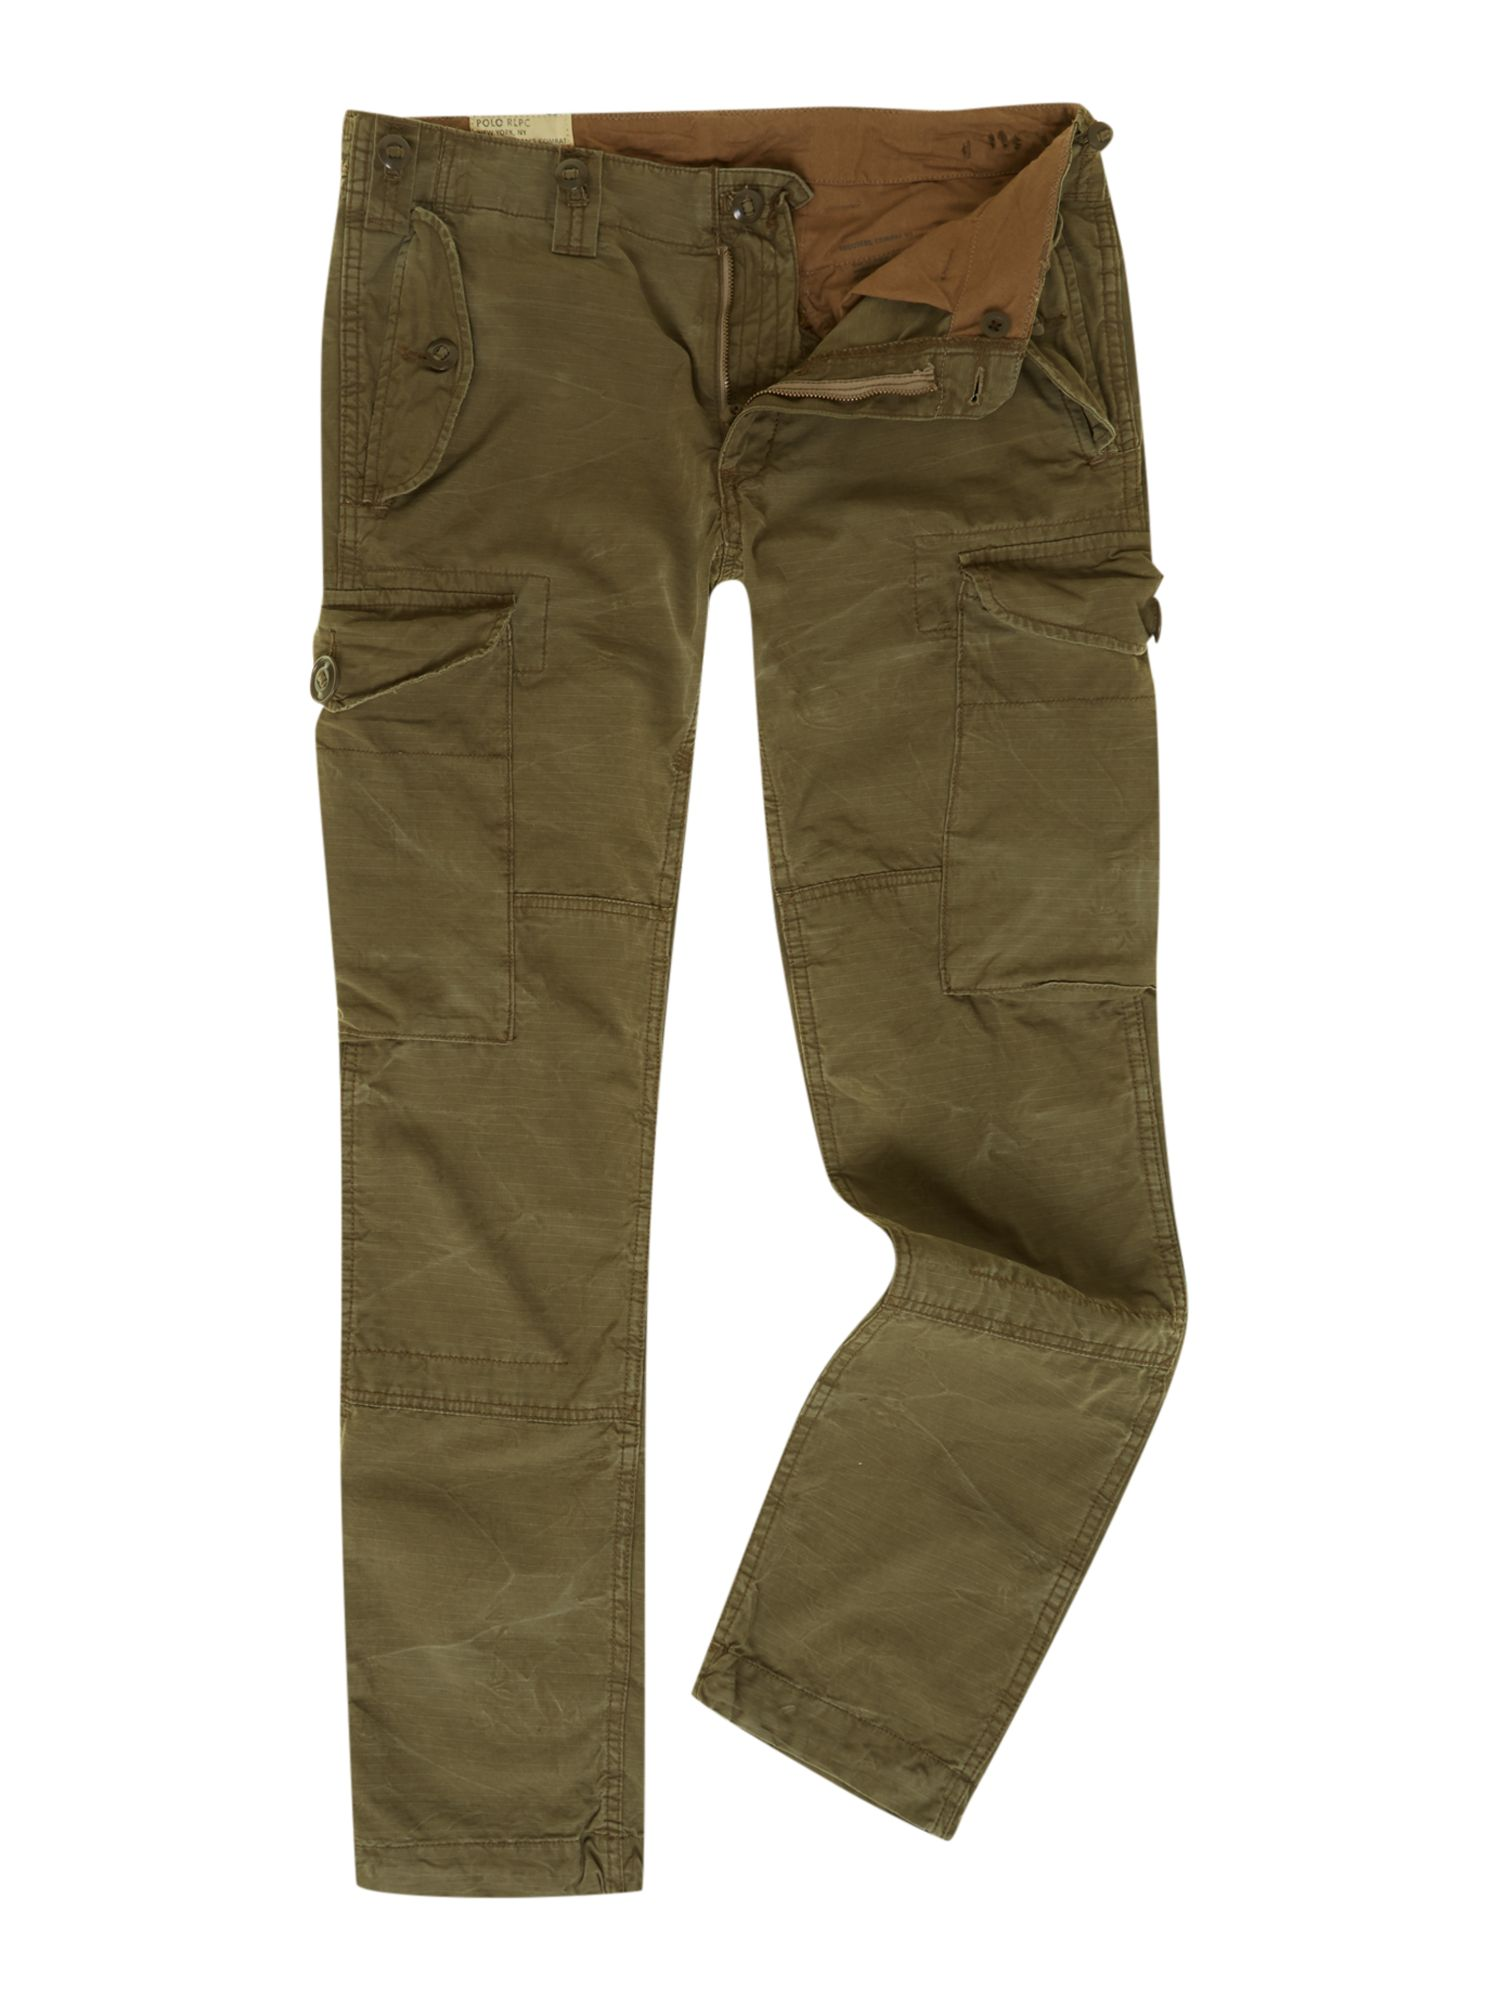 Canadian striaght fit cargo pant